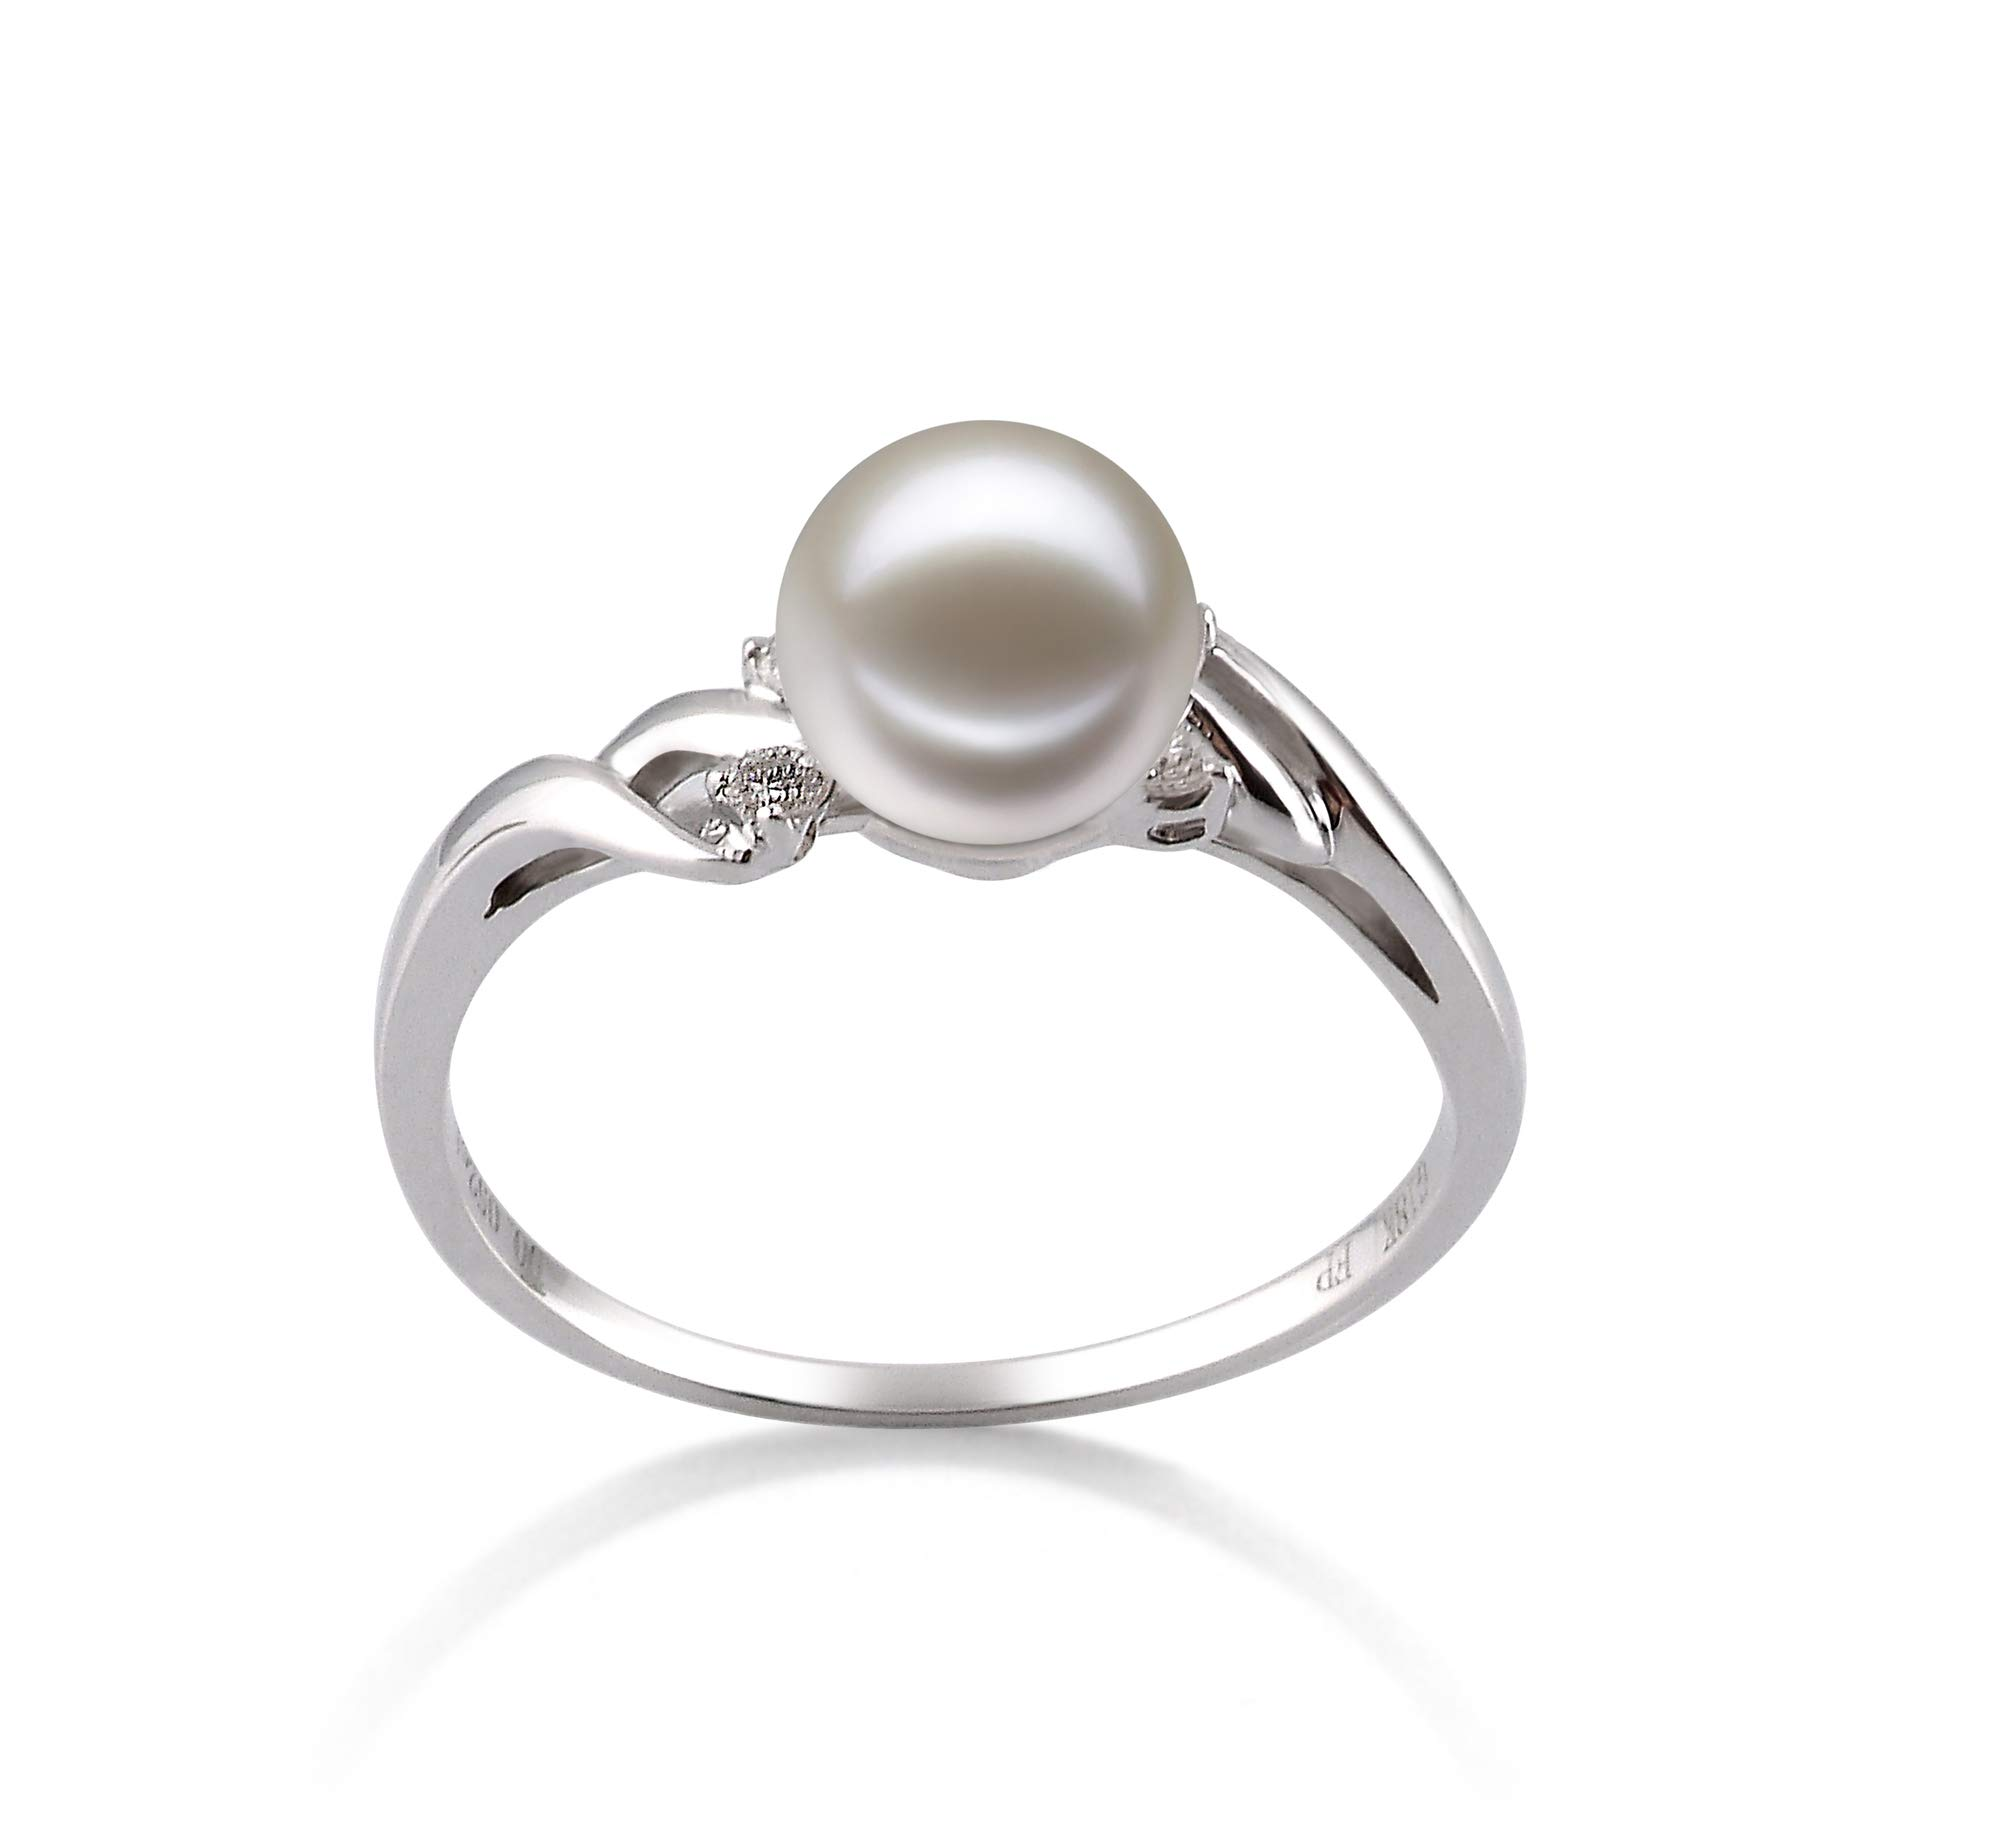 Andrea White 6-7mm AAAA Quality Freshwater 14K White Gold Cultured Pearl Ring For Women - Size-8